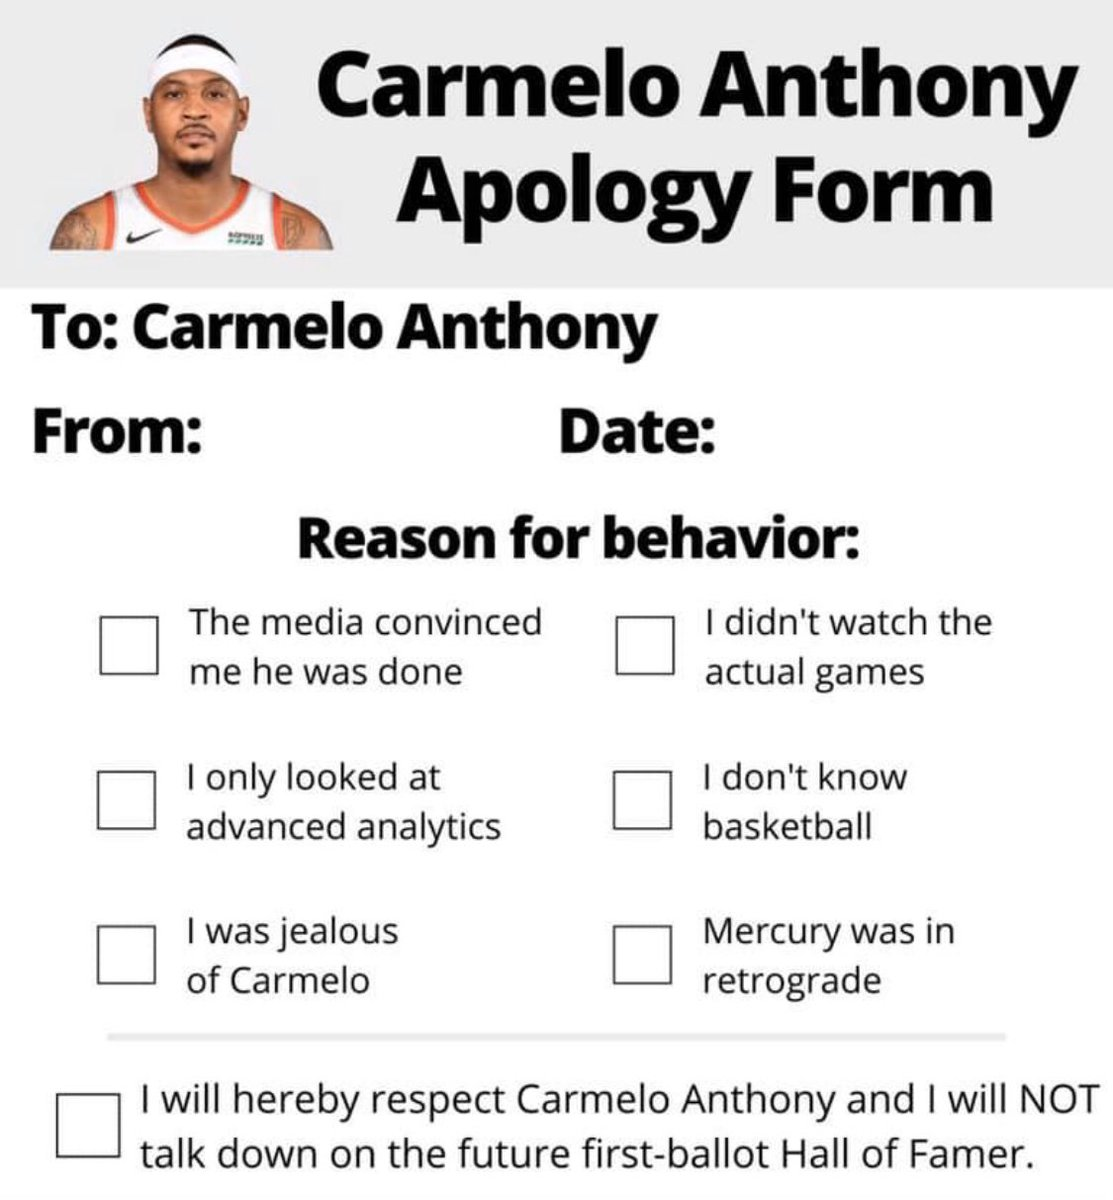 RT @44TheLegend: Carmelo Anthony Apology Form https://t.co/F5Tywkrset